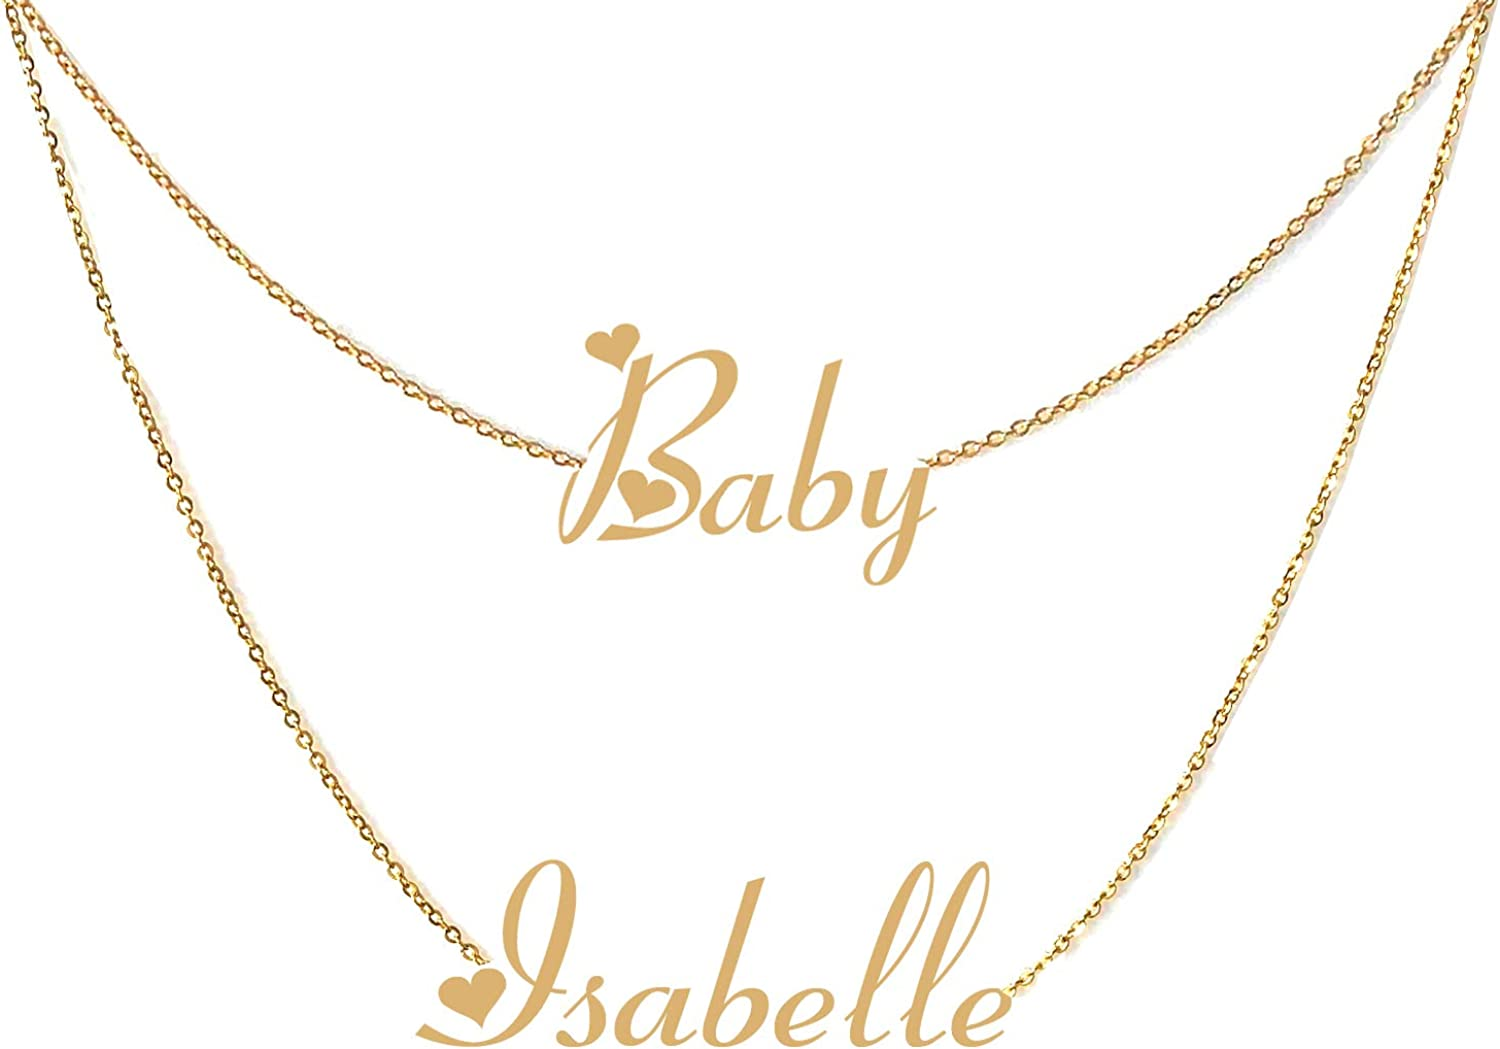 GR859C Personalized Custom Name Necklace Layered Choker Necklaces for Women